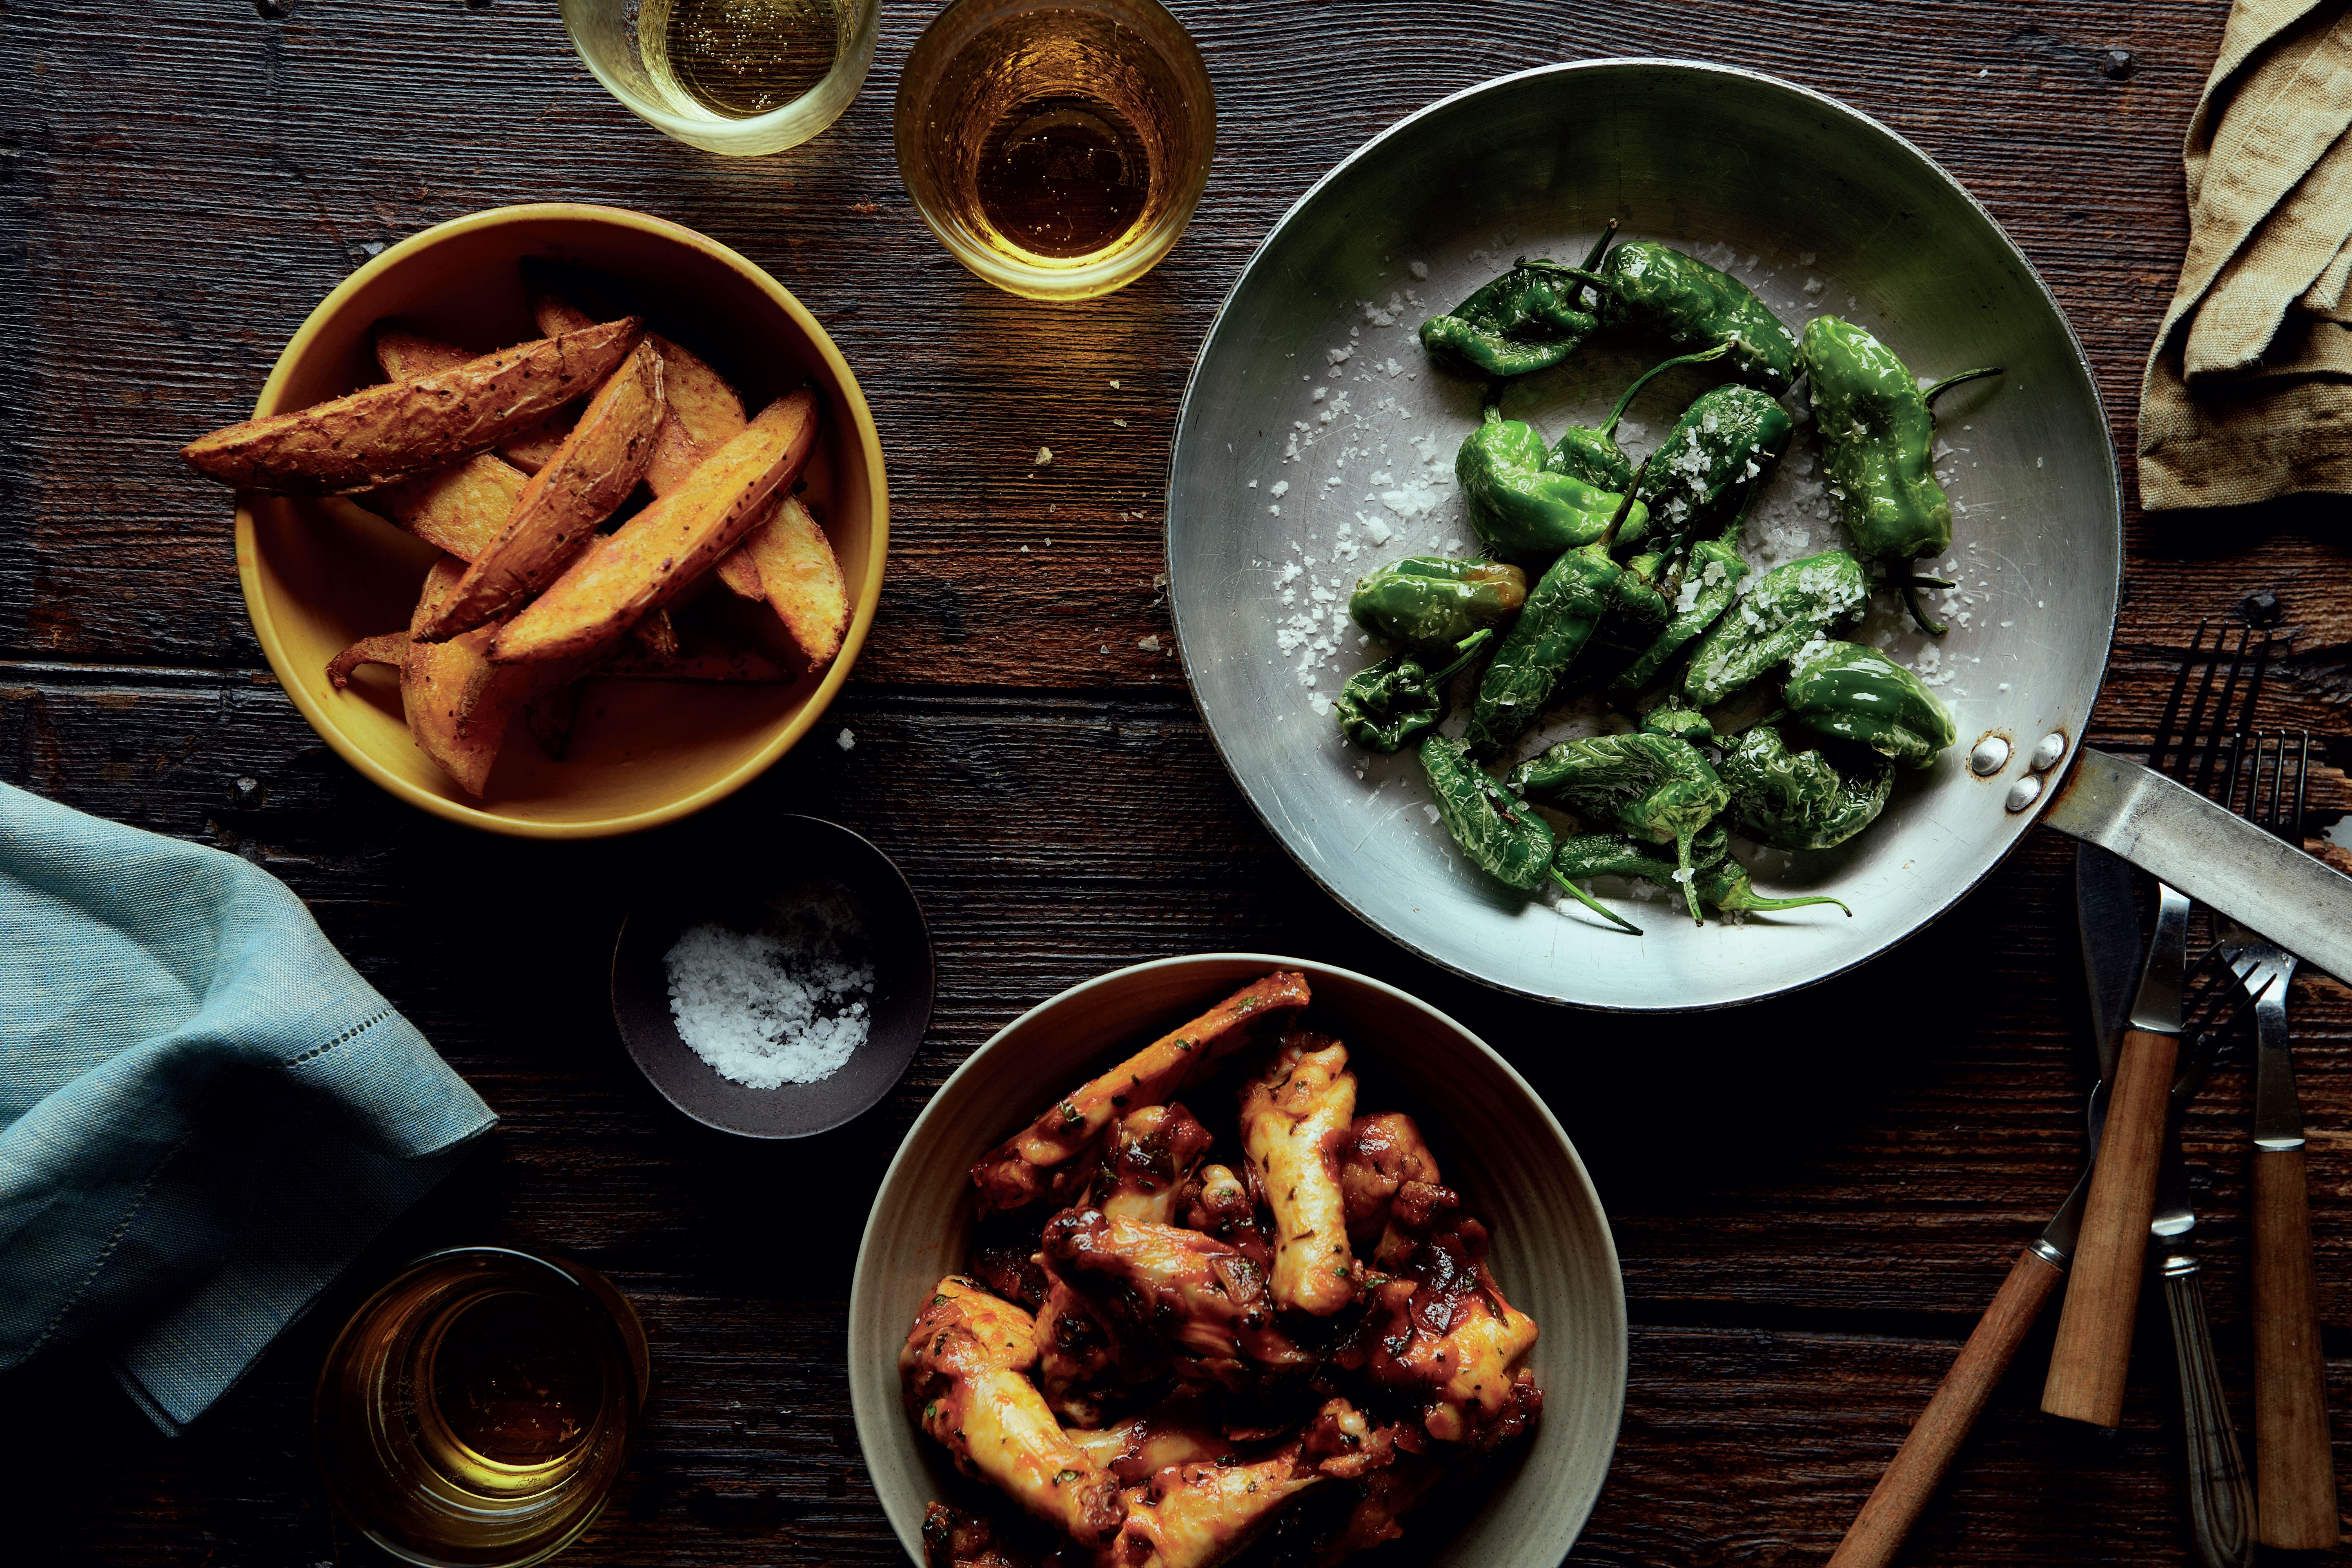 Smoky chilli chicken wings, spiced potato wedges and padrón peppers